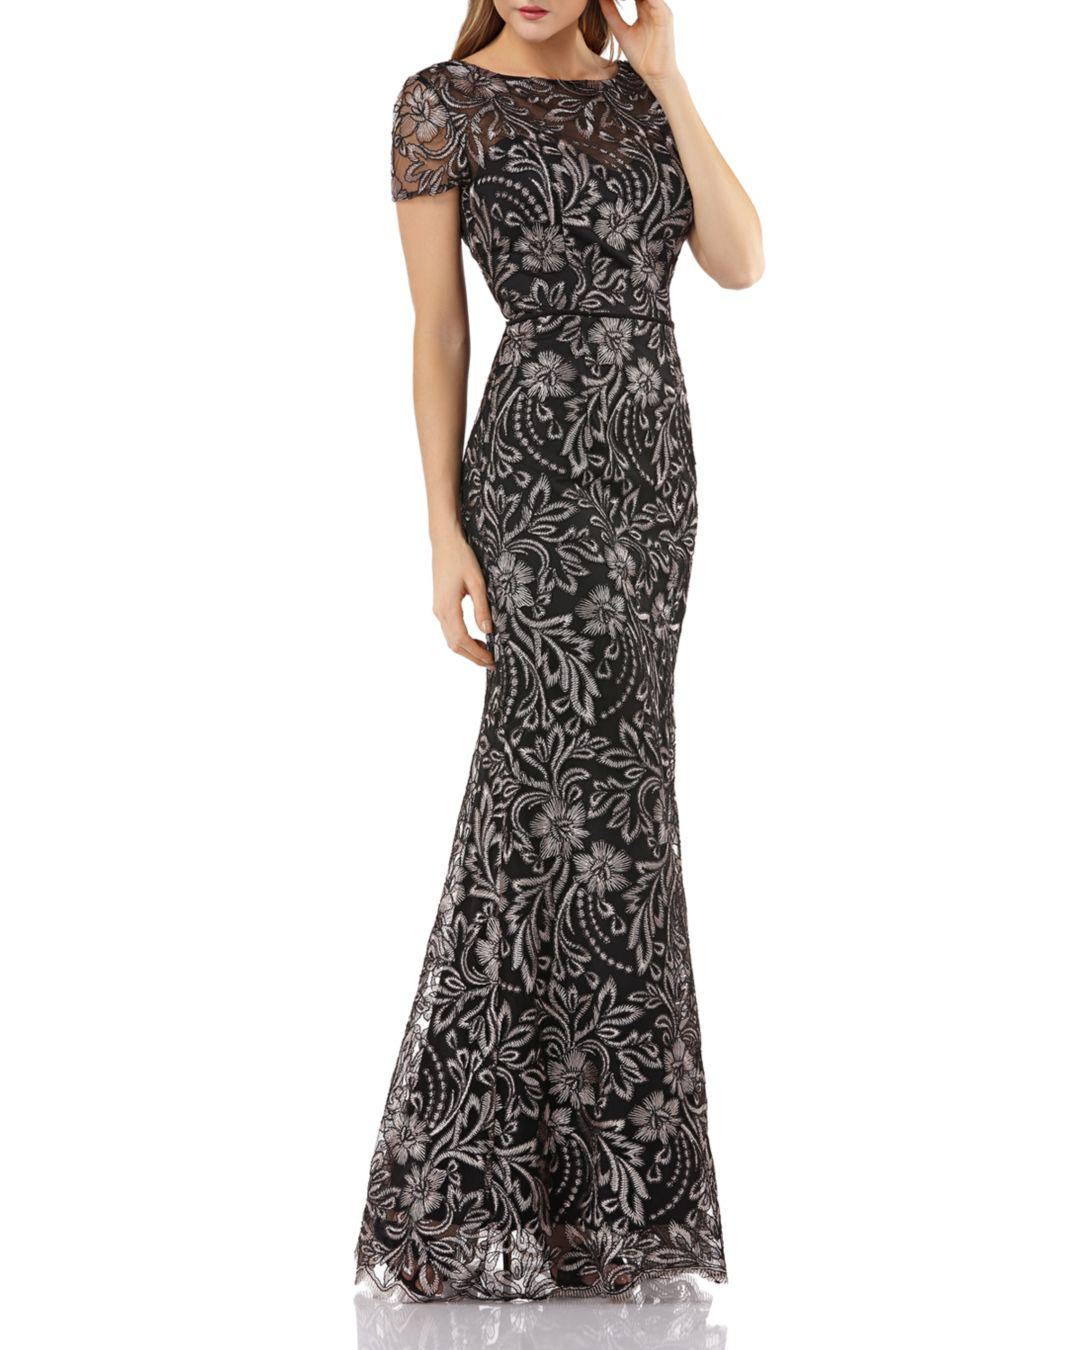 cdf13a7e8c Lyst - JS Collections Embroidered Mermaid Gown in Black